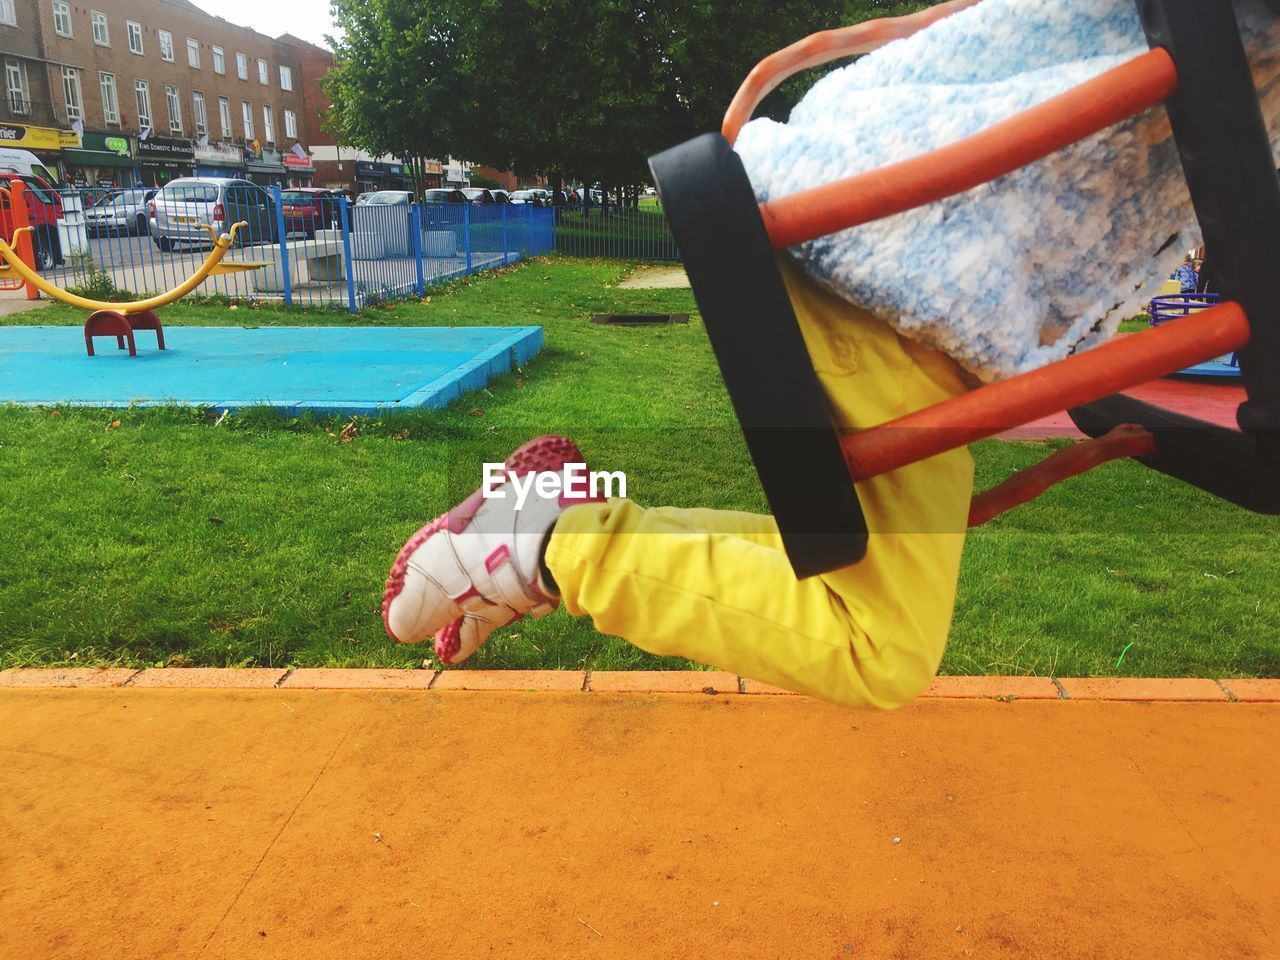 BOY PLAYING ON SLIDE AT PARK